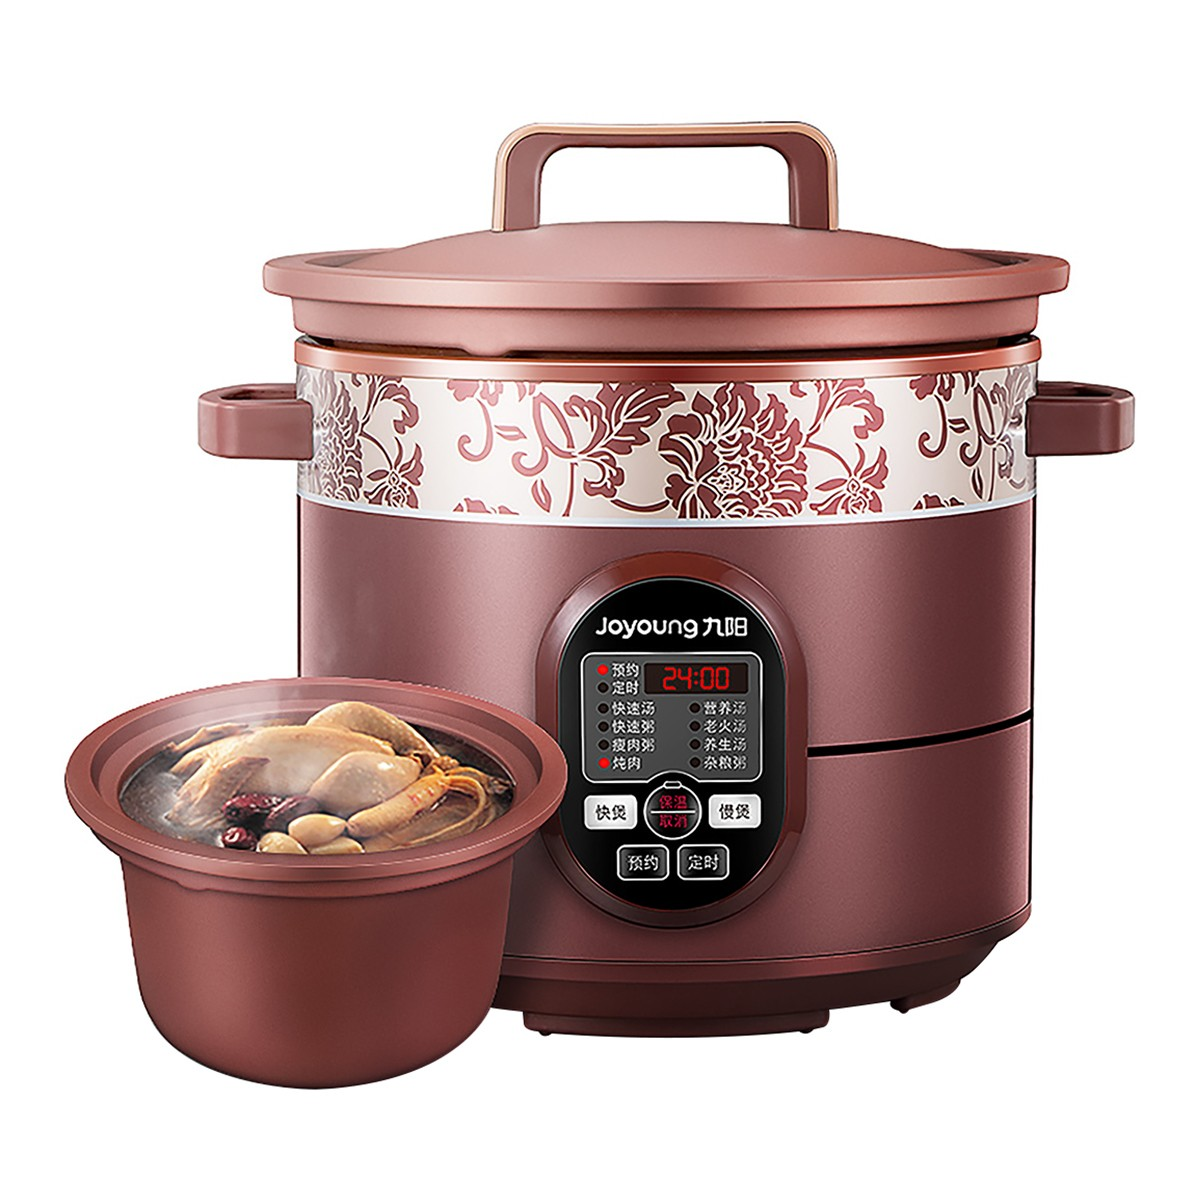 JOYOUNG Multi-Function Purple Clay Pot Slow Cooker 5L JYZS-K523M